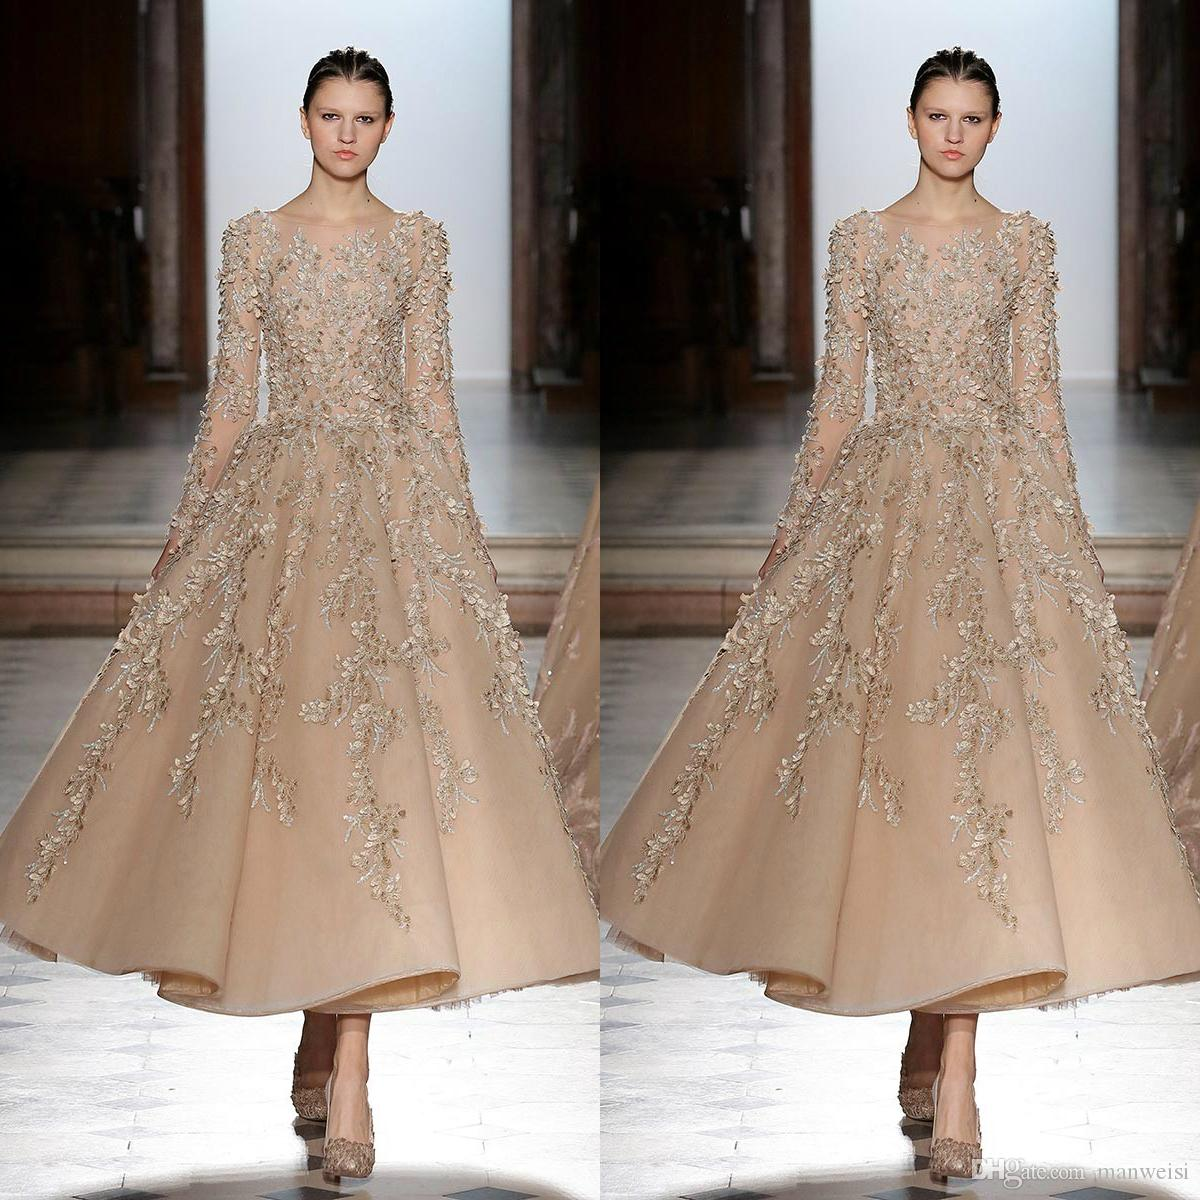 057063407a Tony Ward 2019 A Line Prom Dresses Ankle Length Beaded Lace Formal Evening  Gowns Long Sleeve Jewel Neck Party Dress